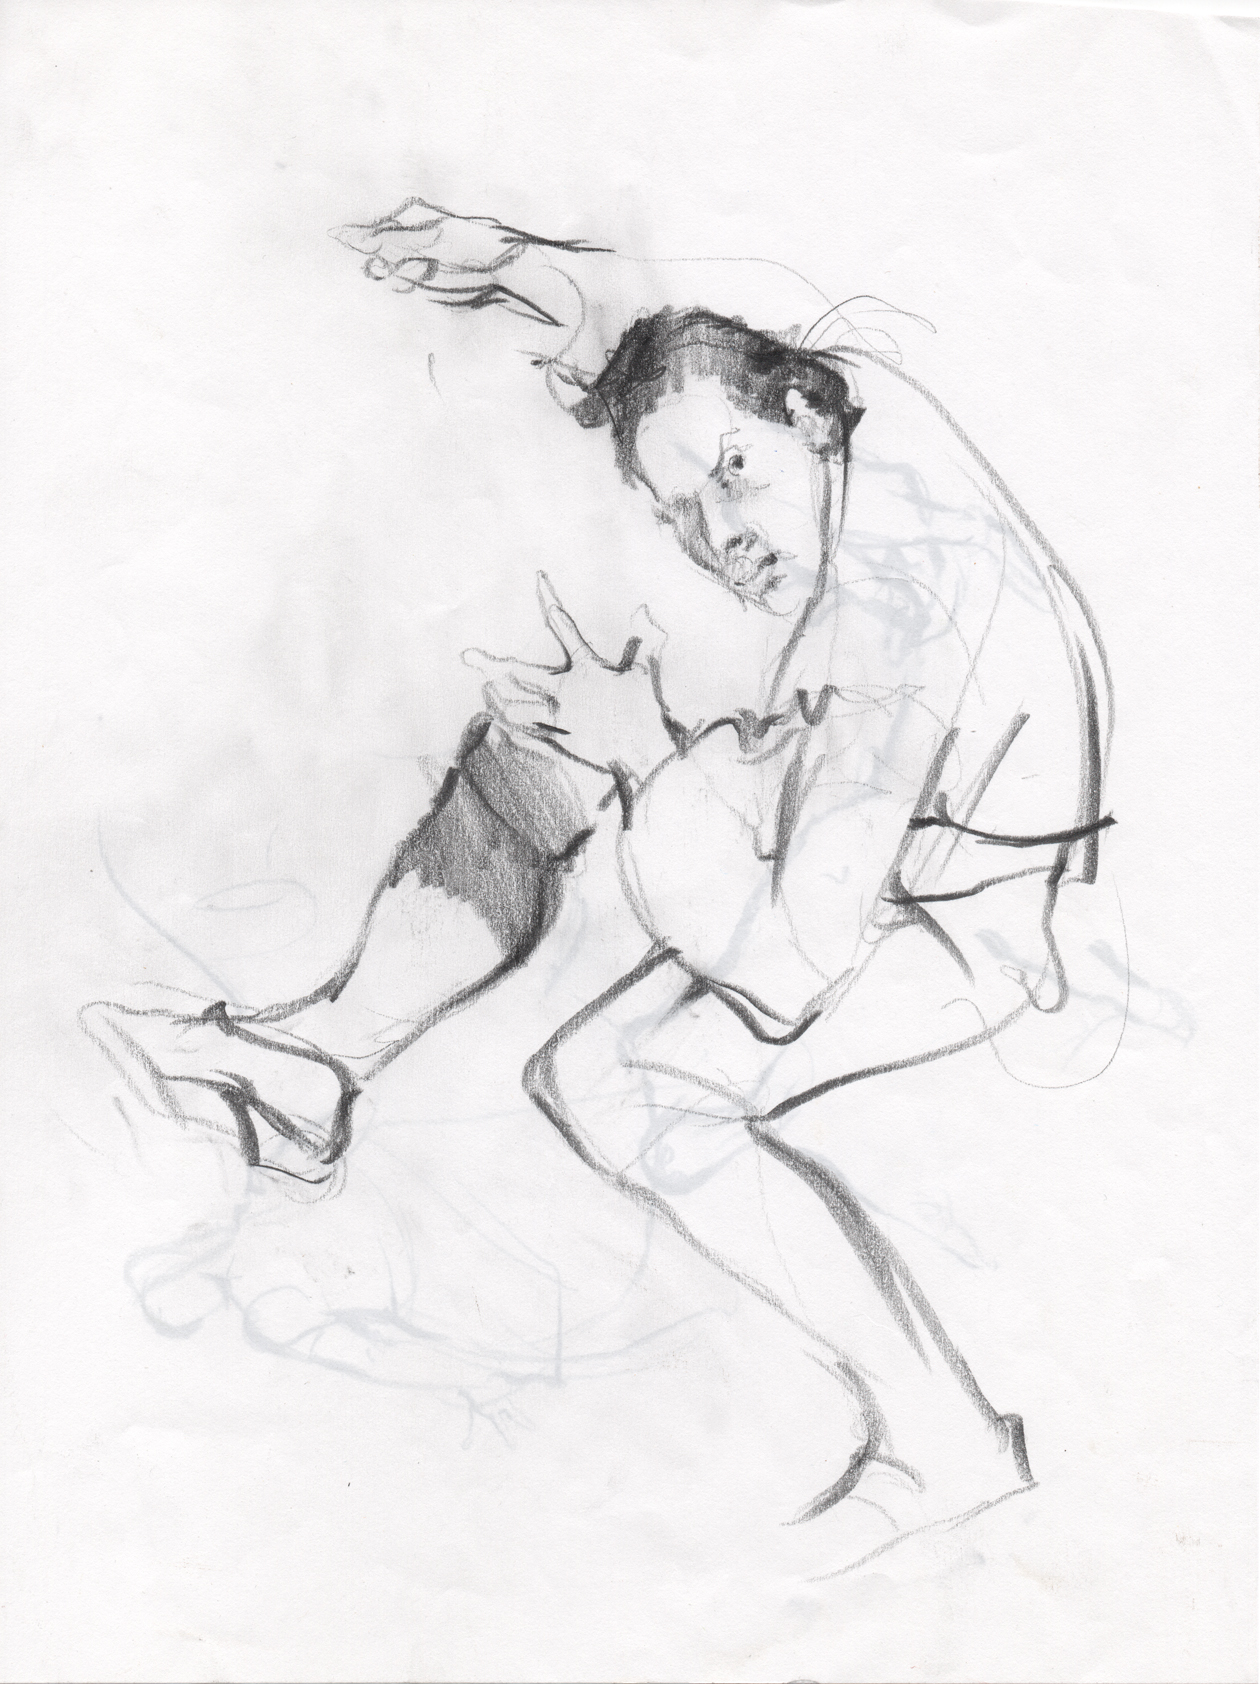 The sketch of figure II